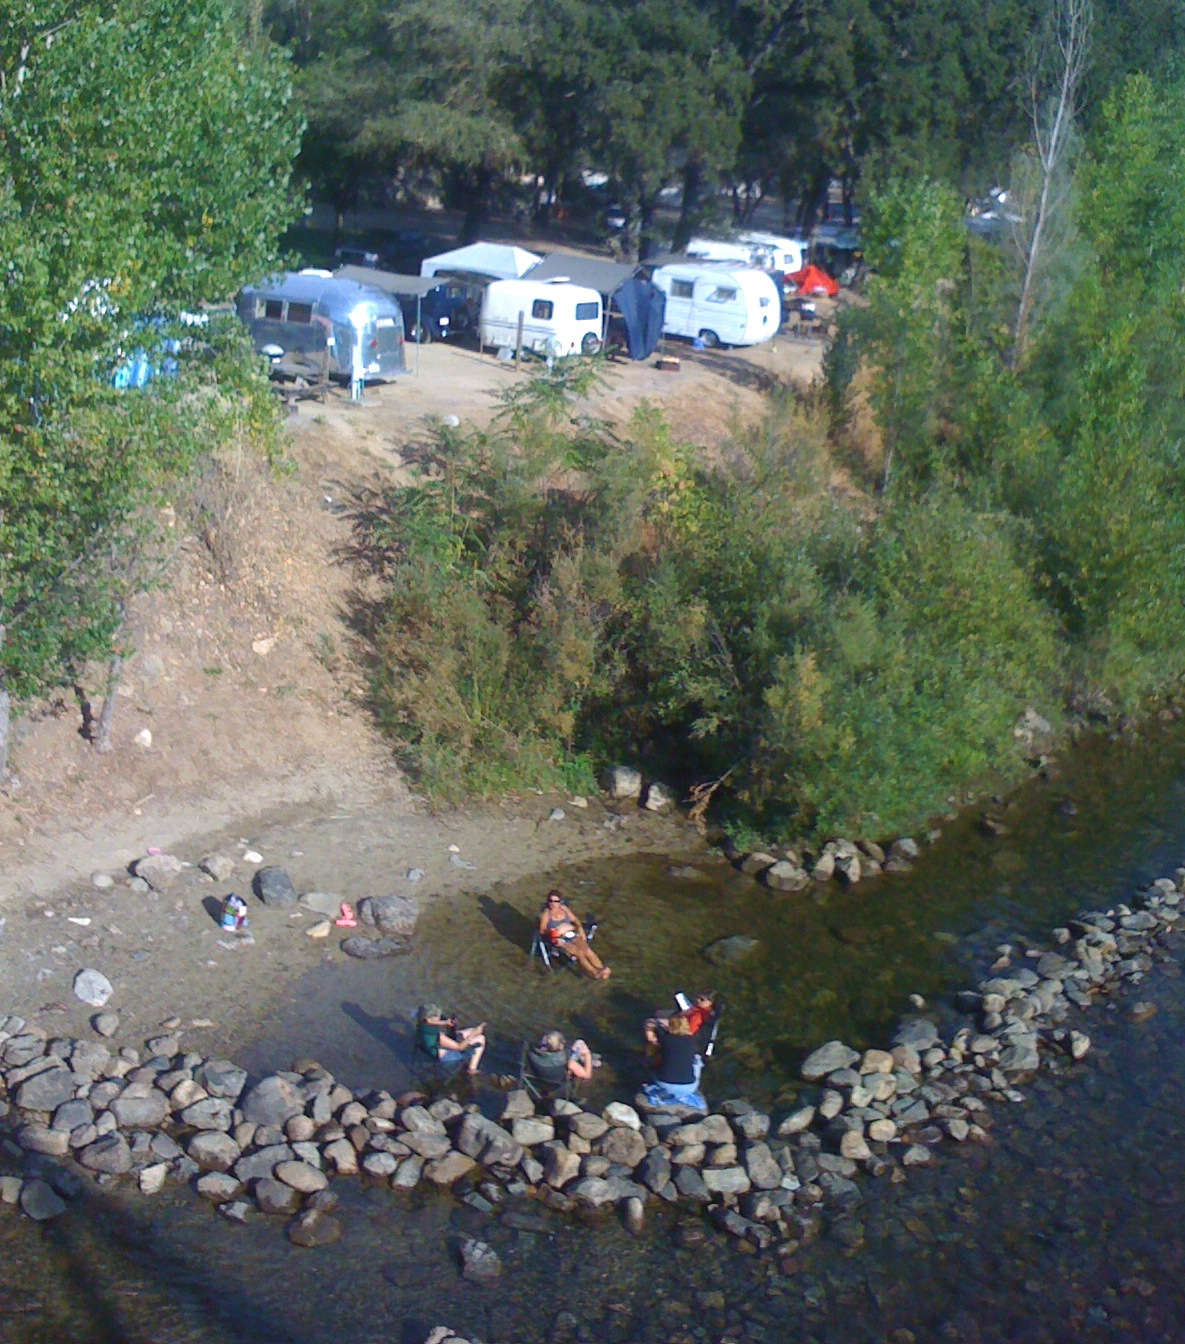 Click image for larger version  Name:coloma campground.jpg Views:58 Size:835.4 KB ID:125282